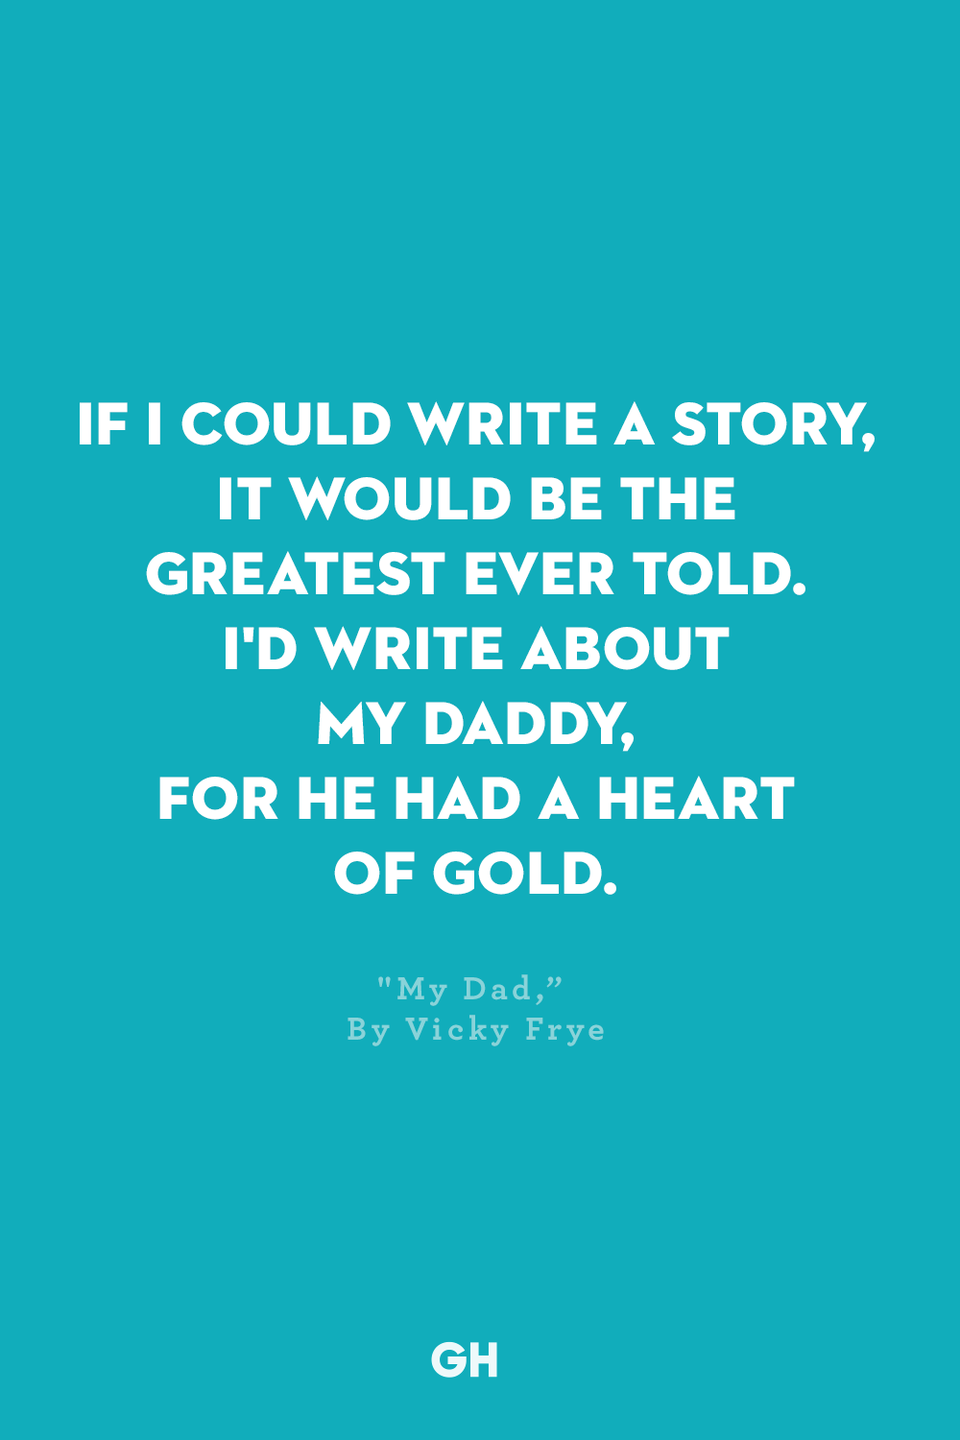 <p>If I could write a story,</p><p>It would be the greatest ever told.</p><p>I'd write about my daddy,</p><p>For he had a heart of gold.</p>